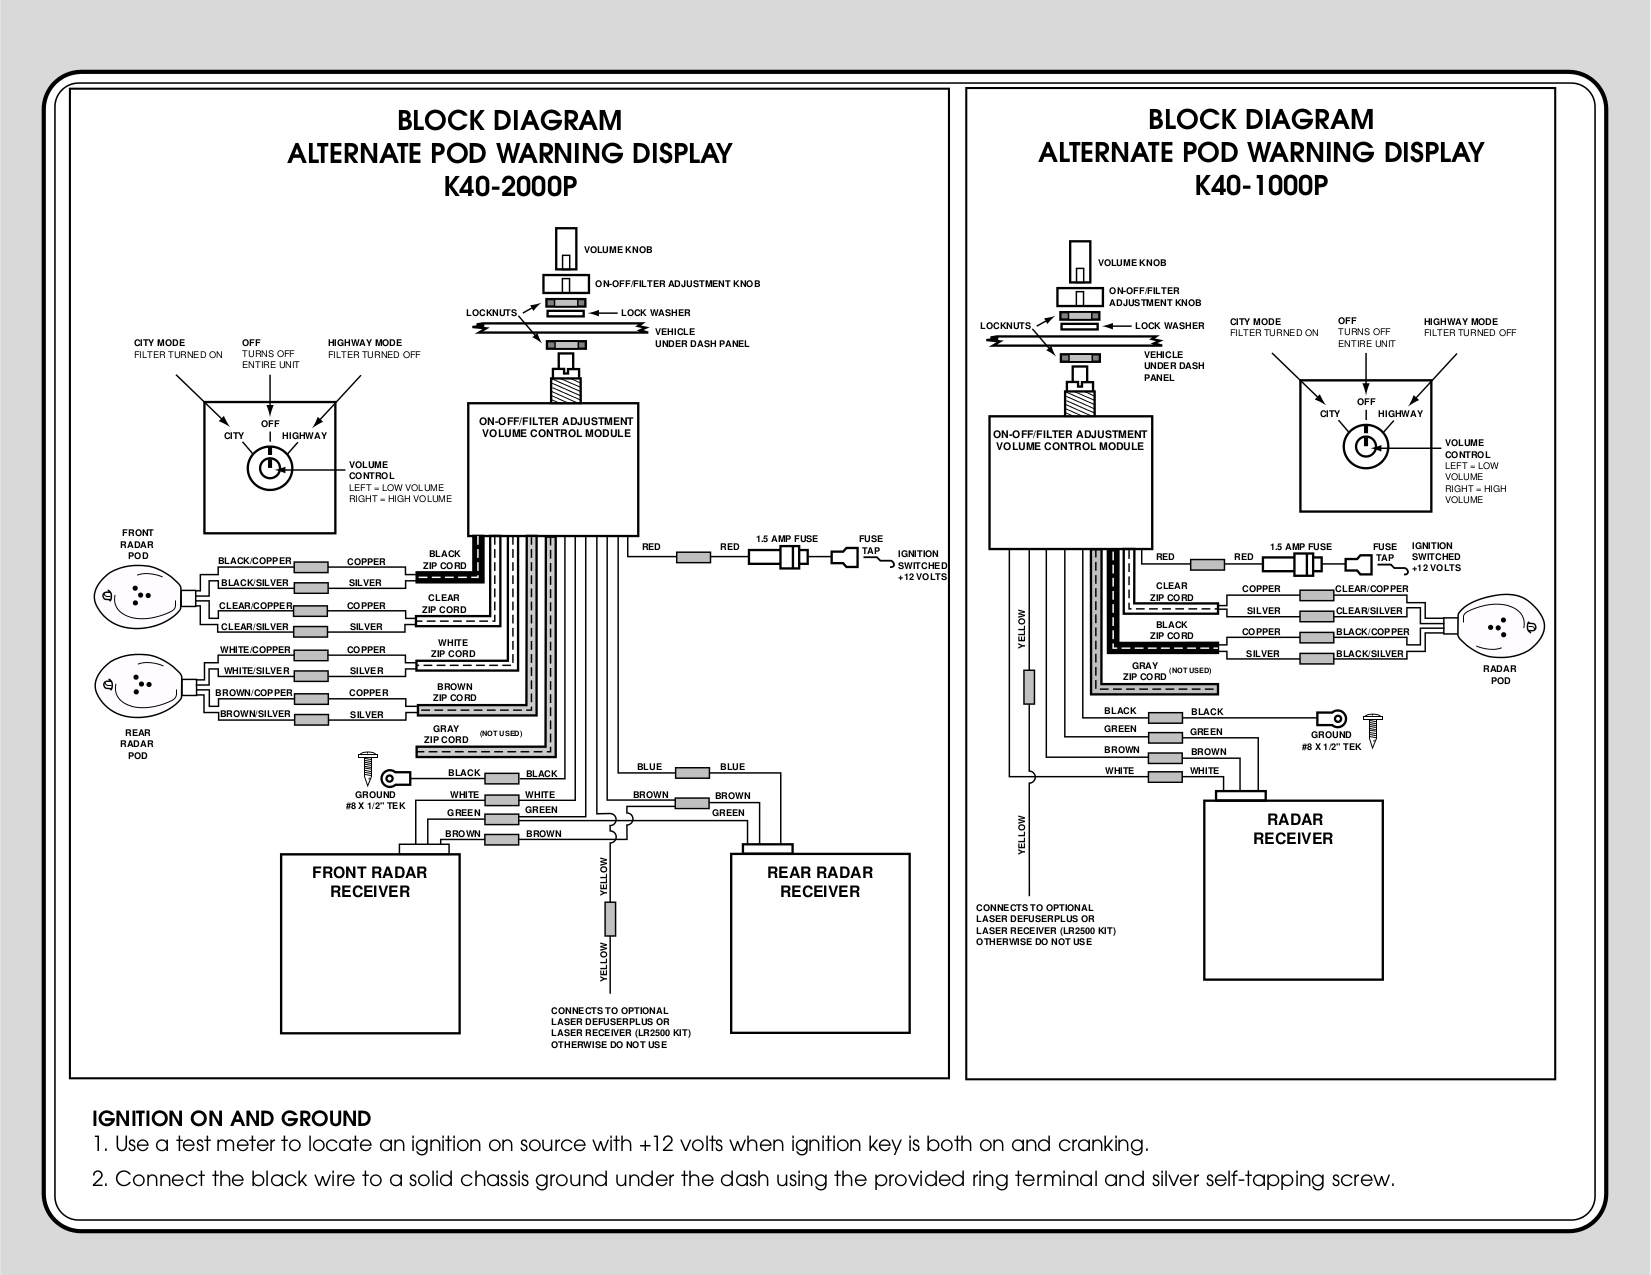 k4020remote20install.pdf-0  Mw Laser Wiring Diagram on way switches, channel car, channel car amplifier, light fluorescent lamp ballast, speed single phase motor, three-way light switch, pole contactor, bulb ballast, lamp ballast, pole thermostat,